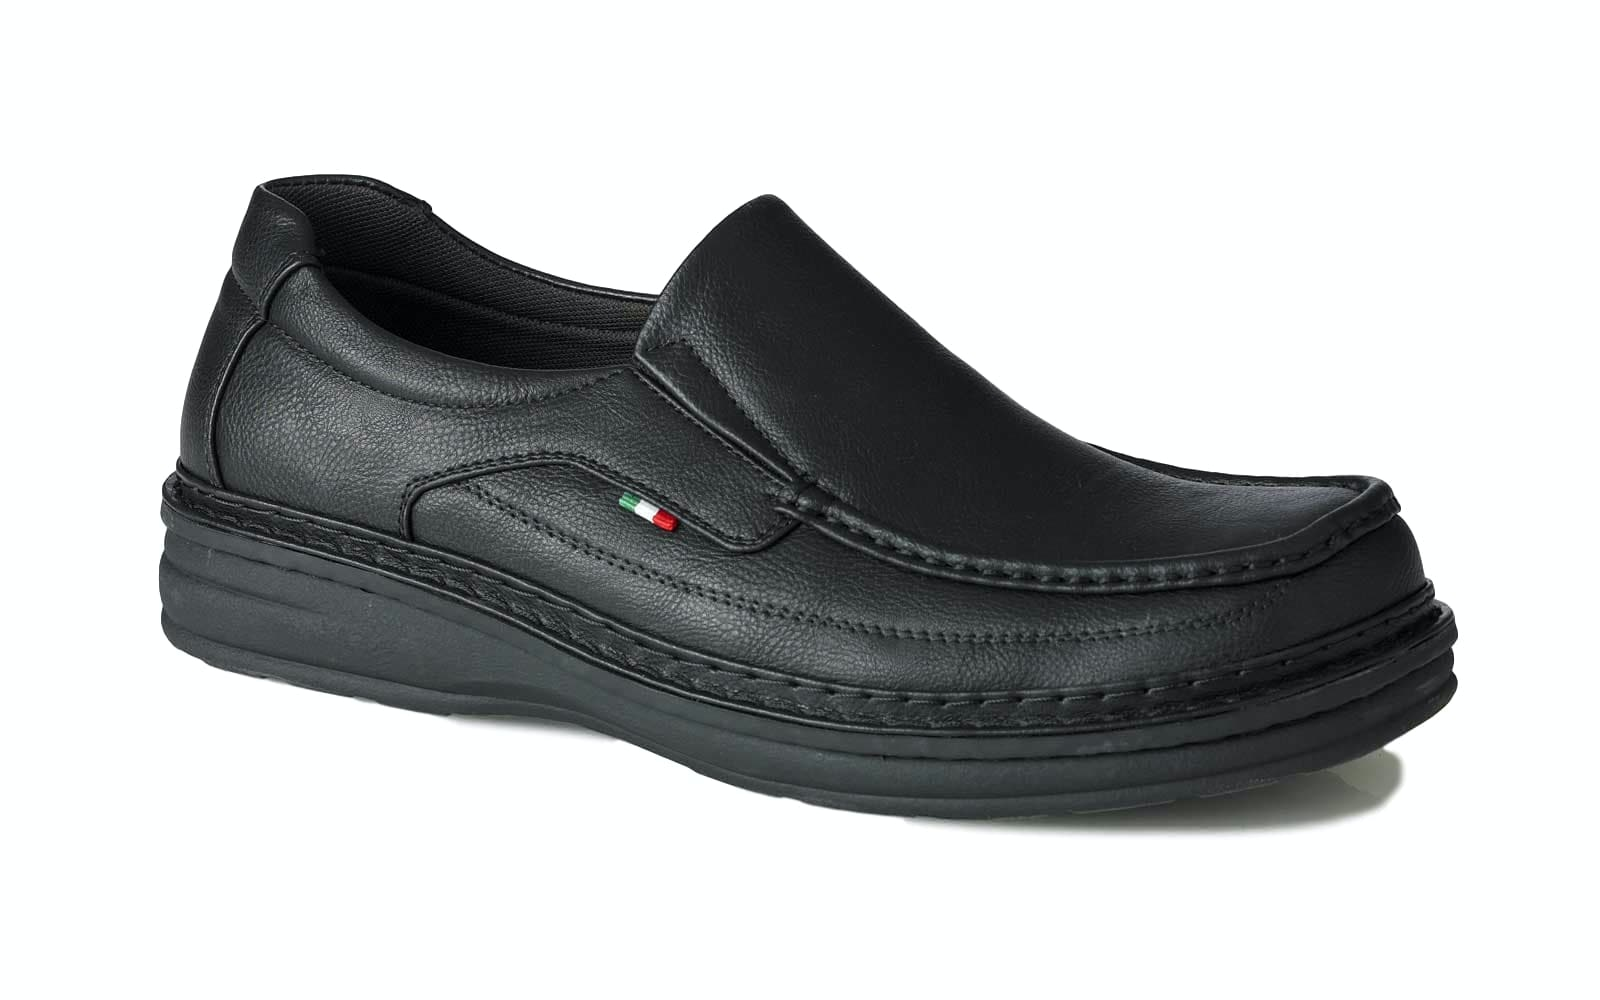 D555 Sonny Slip On Shoe Black